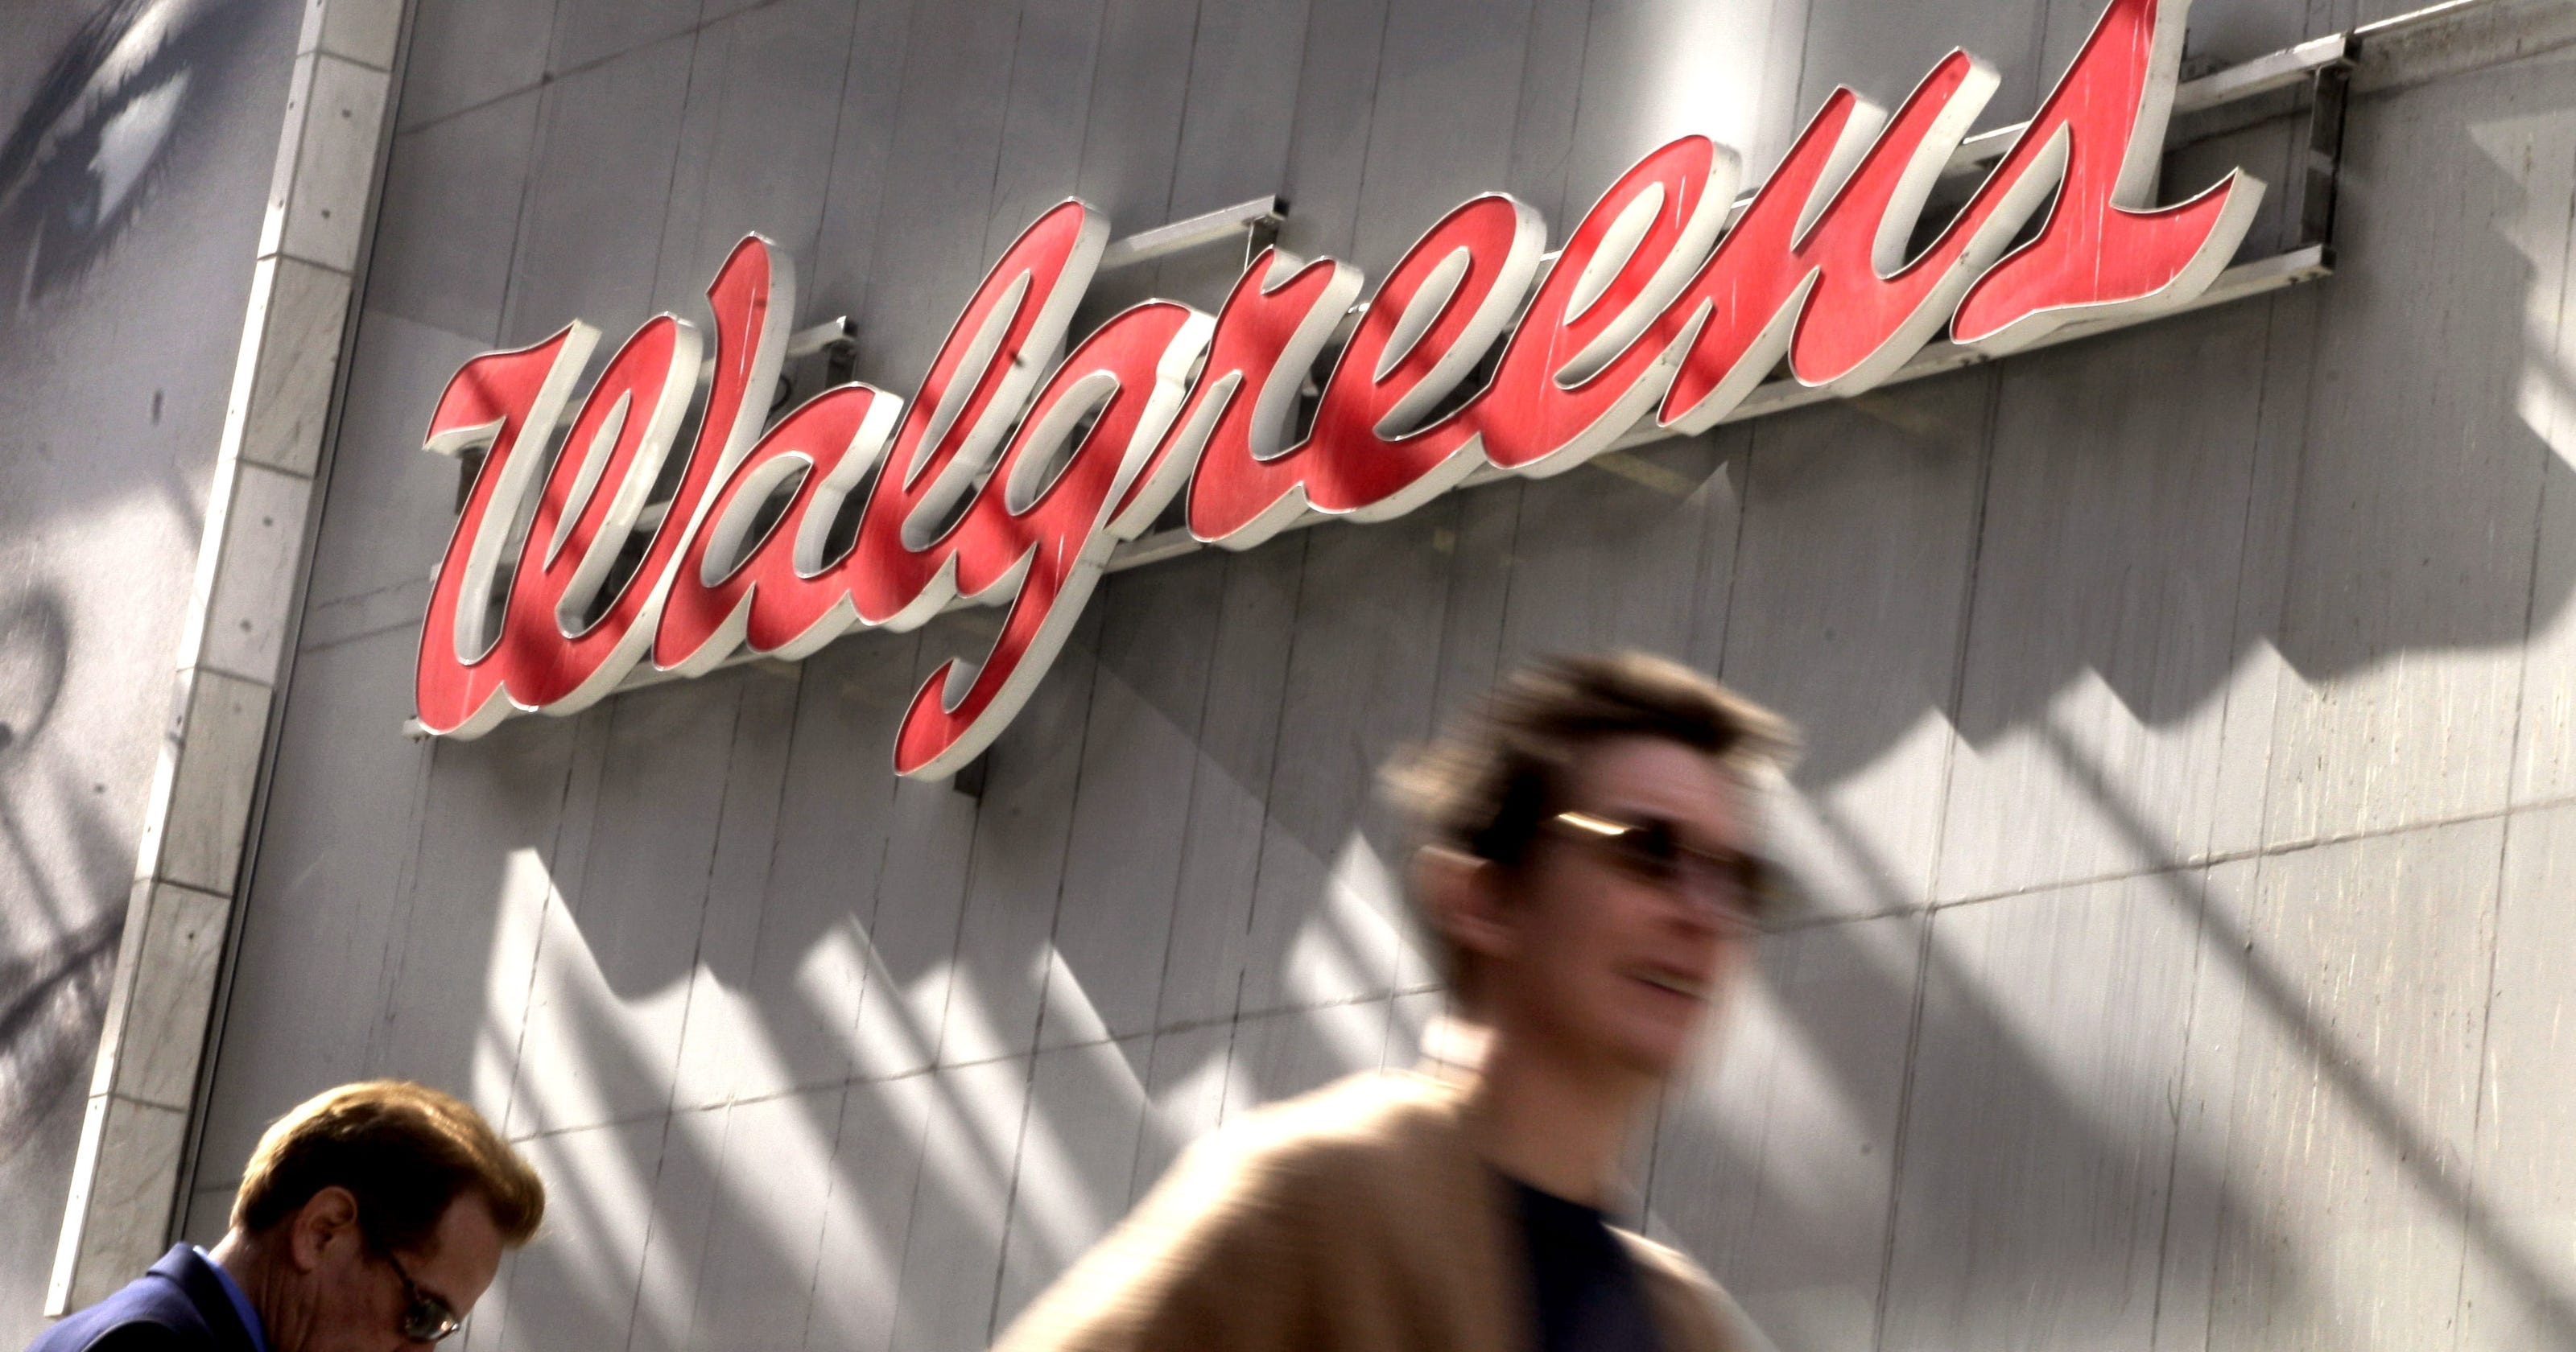 Walgreens To Pay 80 Million For Oxycodone Violations